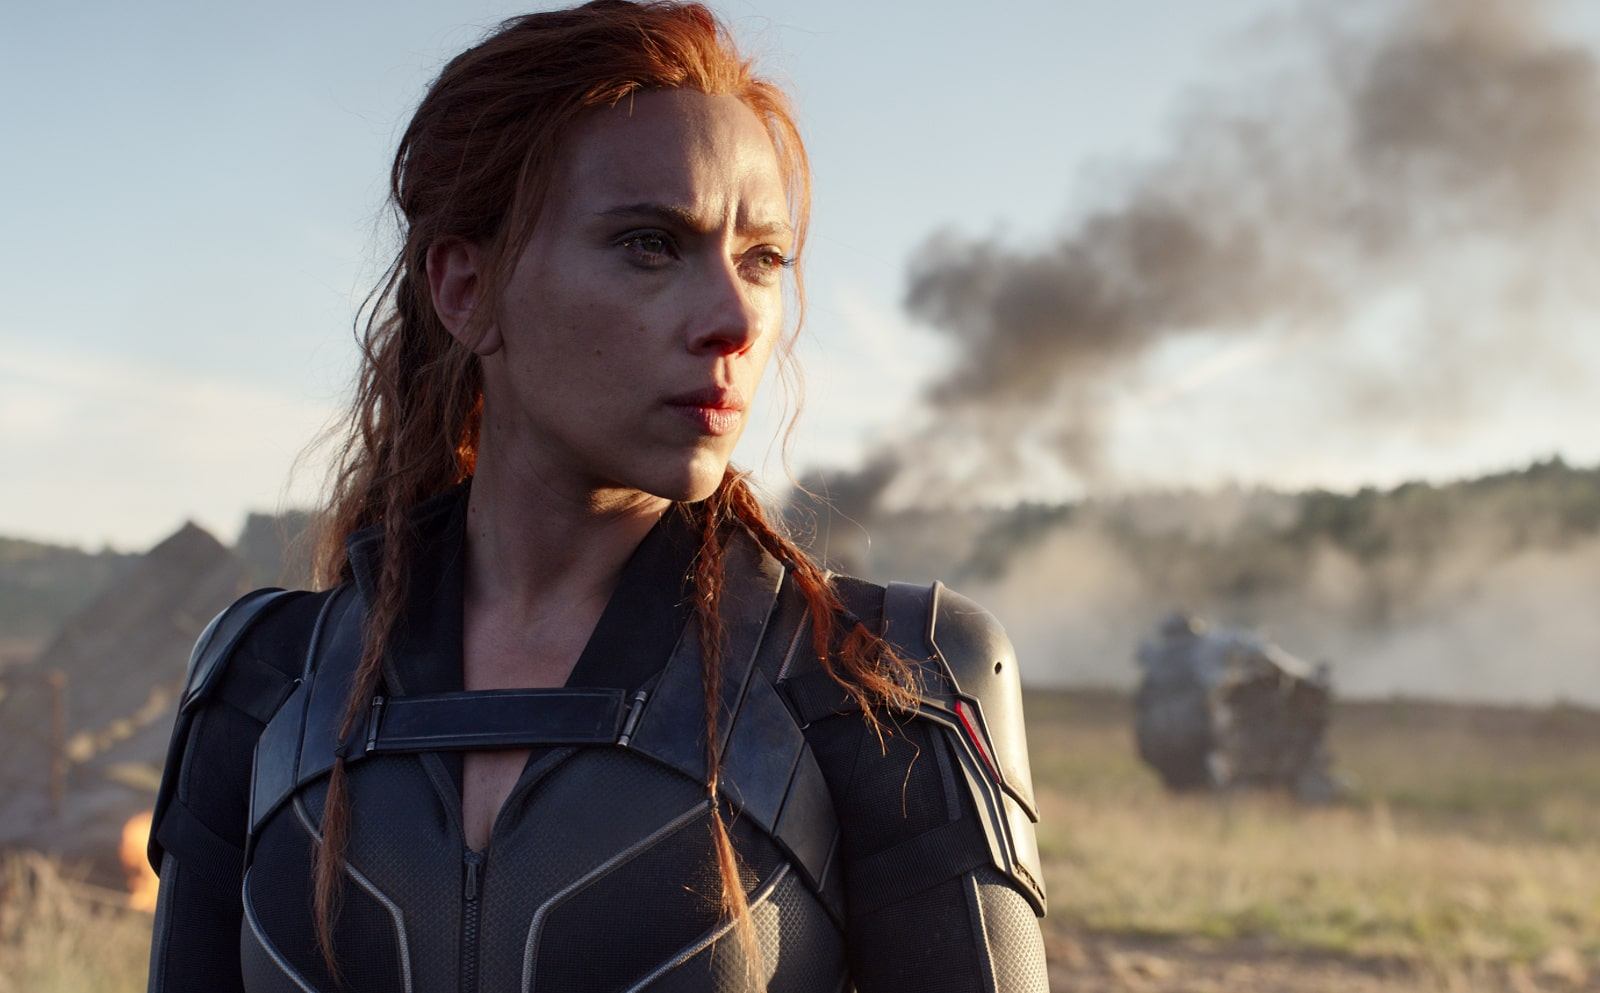 Disney says it found ways to compensate talent in the wake of 'Black Widow' lawsuit